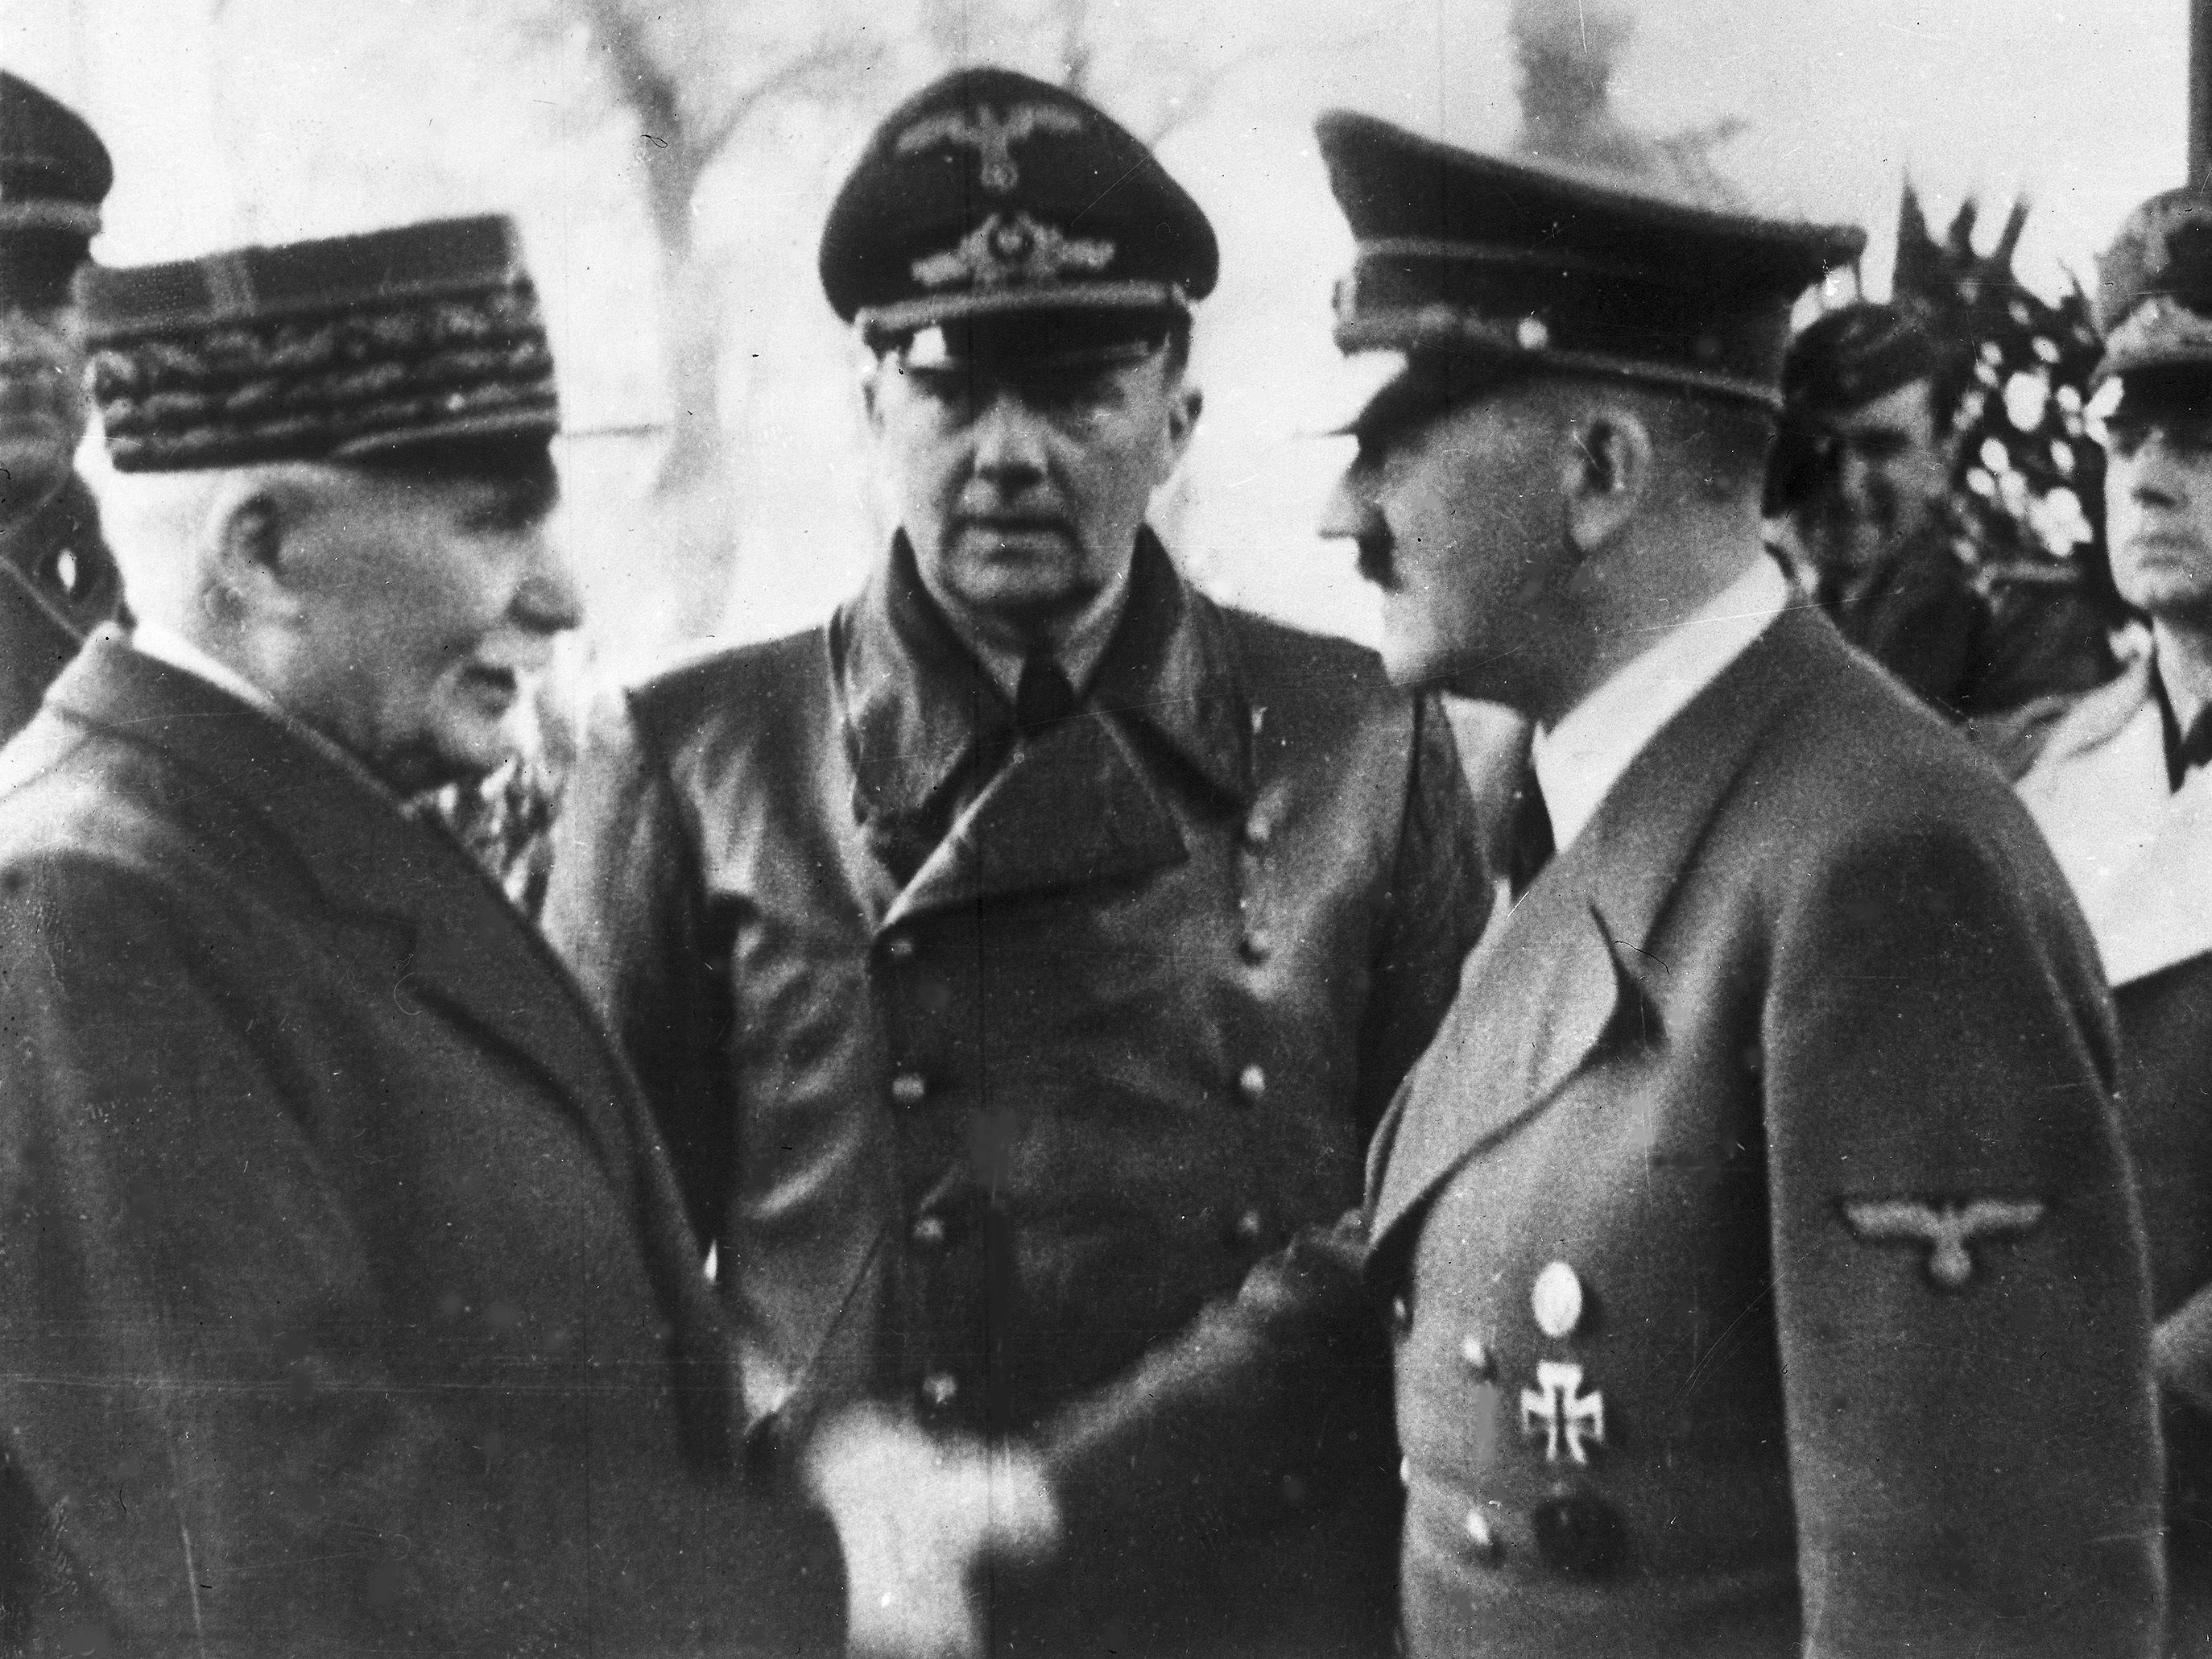 German Chancellor Adolf Hitler shakes hands with Head of State of Vichy France Marshall Philippe Pétain in occupied France on Oct. 24, 1940. AP